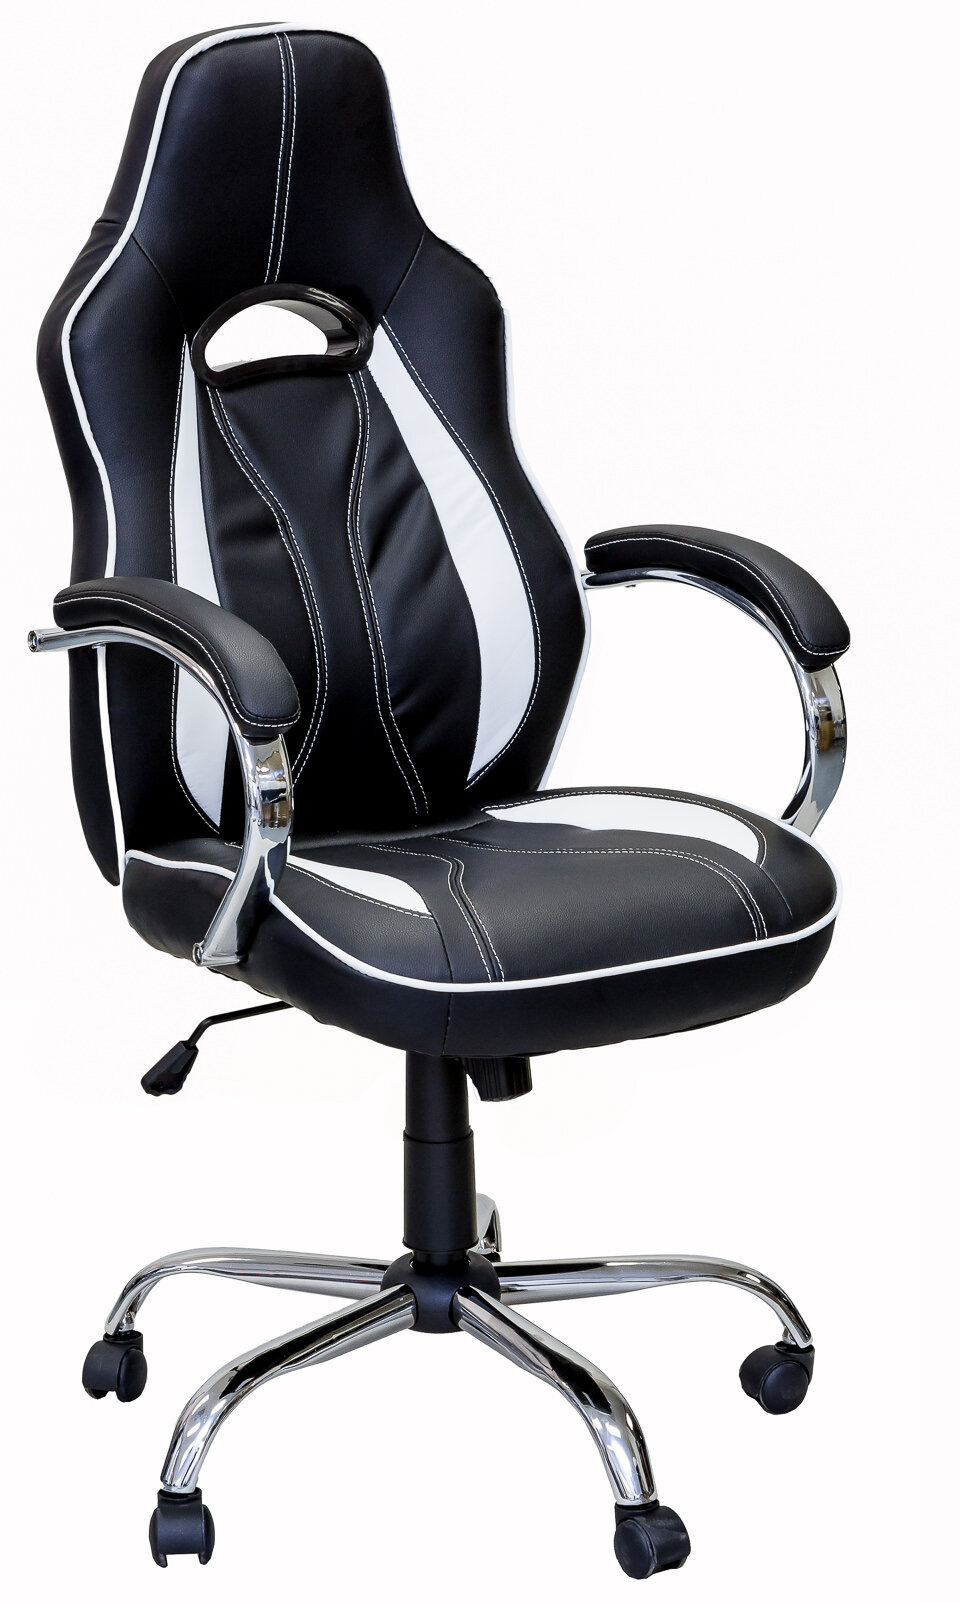 Tormey Series Gaming Racing Style Swivel Office Chair on blue race car desk chair, retro style office chair, racing computer chair, racing furniture, camaro racing car office chair, antique style office chair, audi racing office chair, gt omega pro racing office chair, sitting in a chair, racing seats, racing chair xbox one, western style office chair, car style office chair, racing style swivel chair,